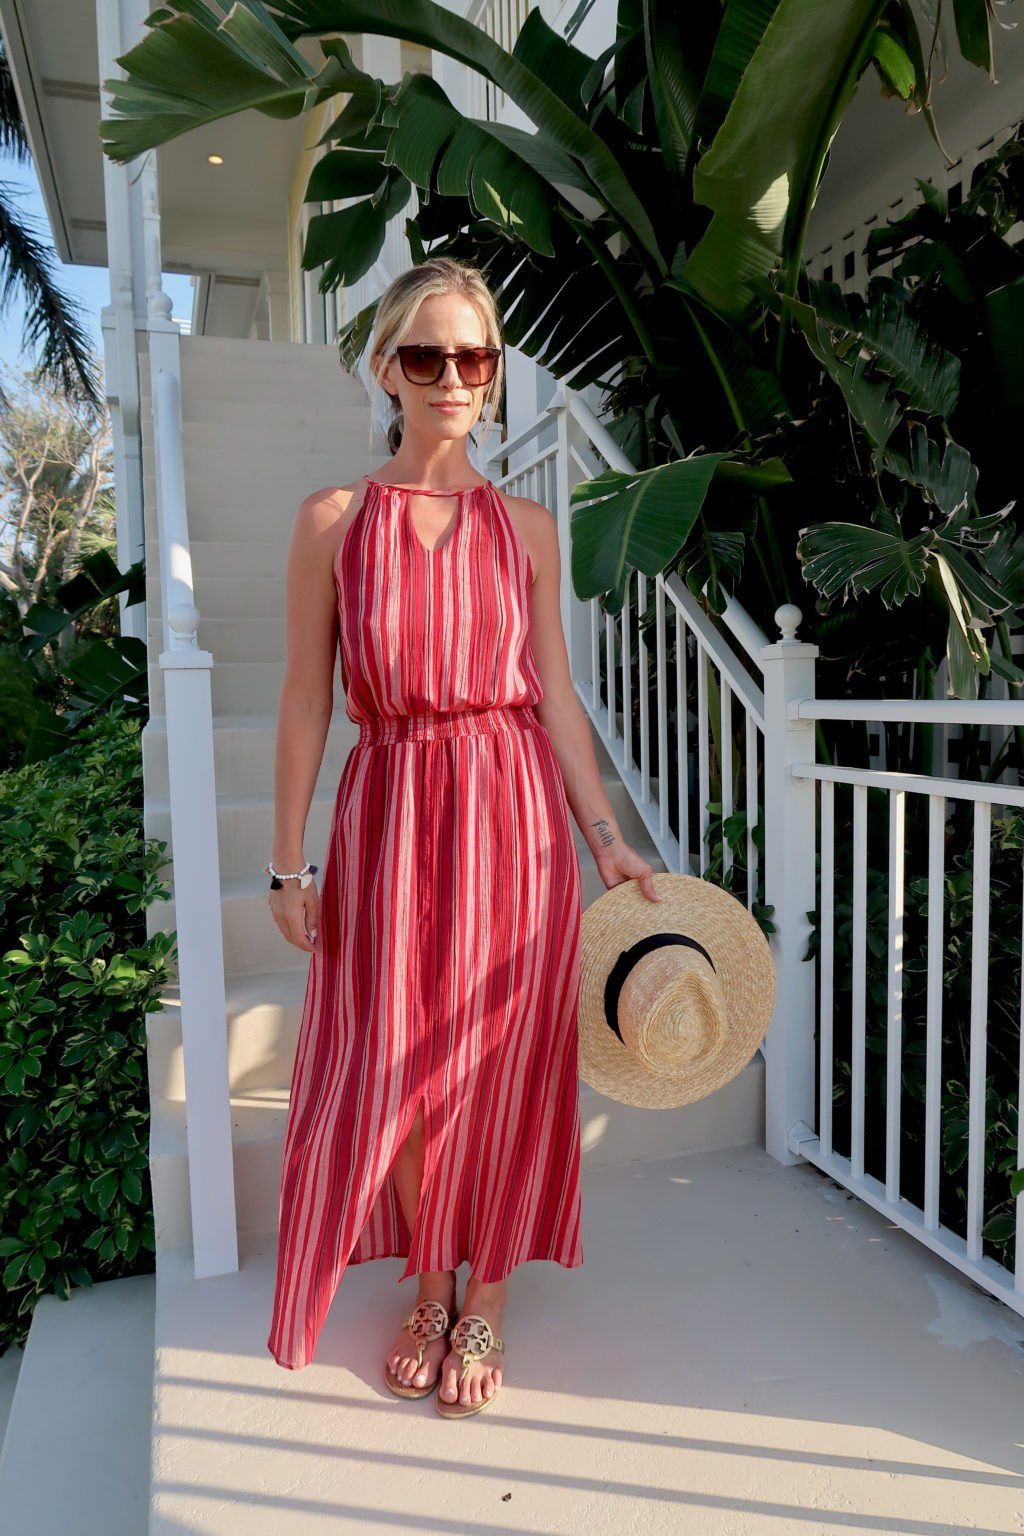 Beach vacation style, striped maxi dress, straw hat, sandals